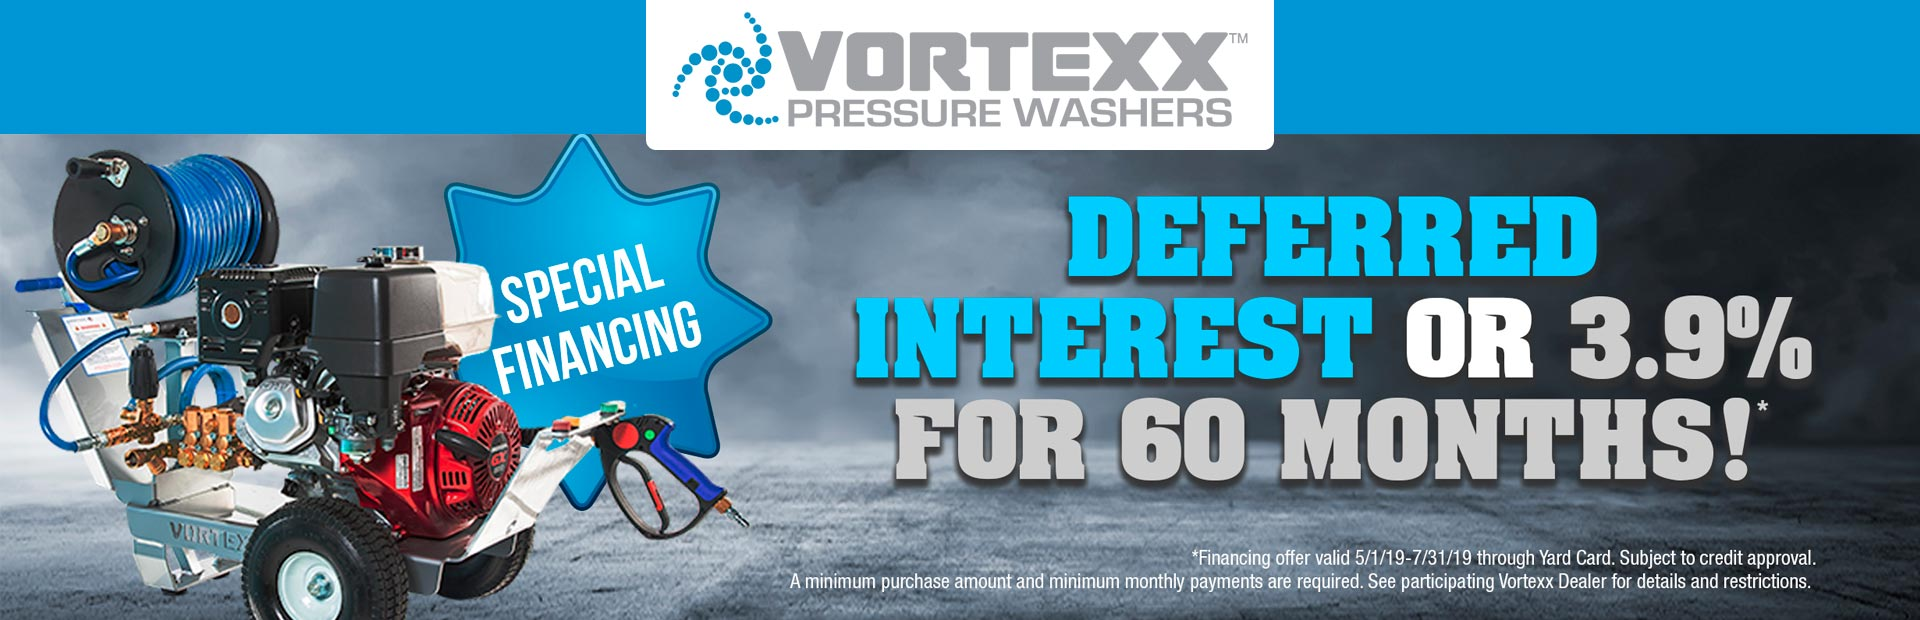 Vortexx: Special Financing - Deferred Interest